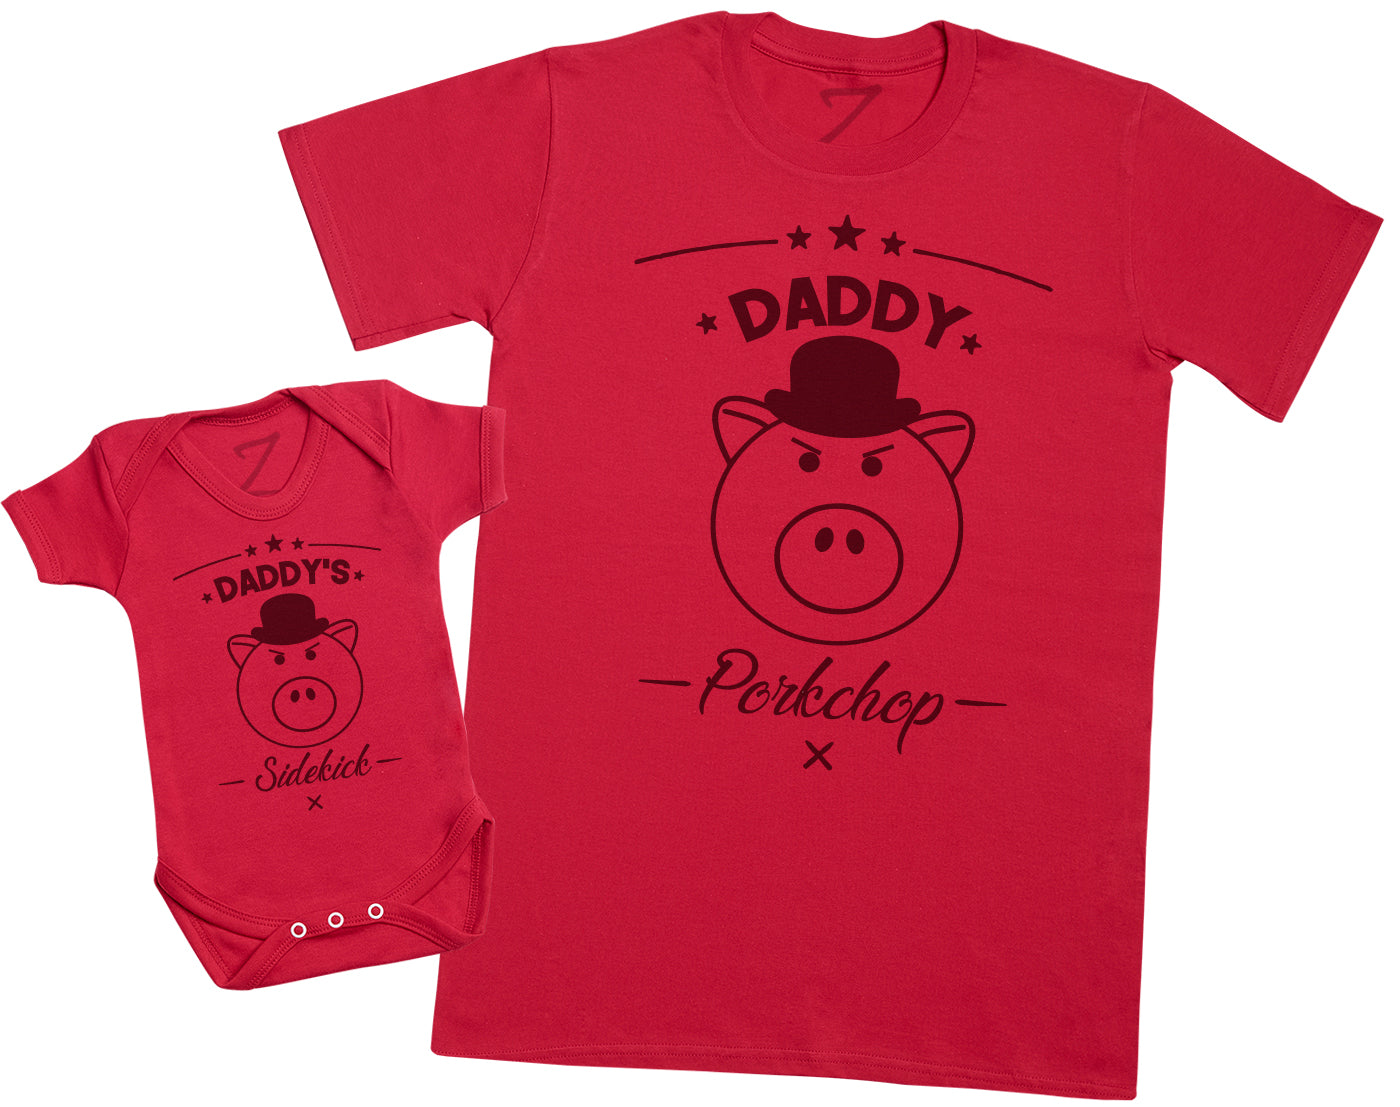 Daddy's Sidekick Porkchop - Mens T Shirt & Baby Bodysuit